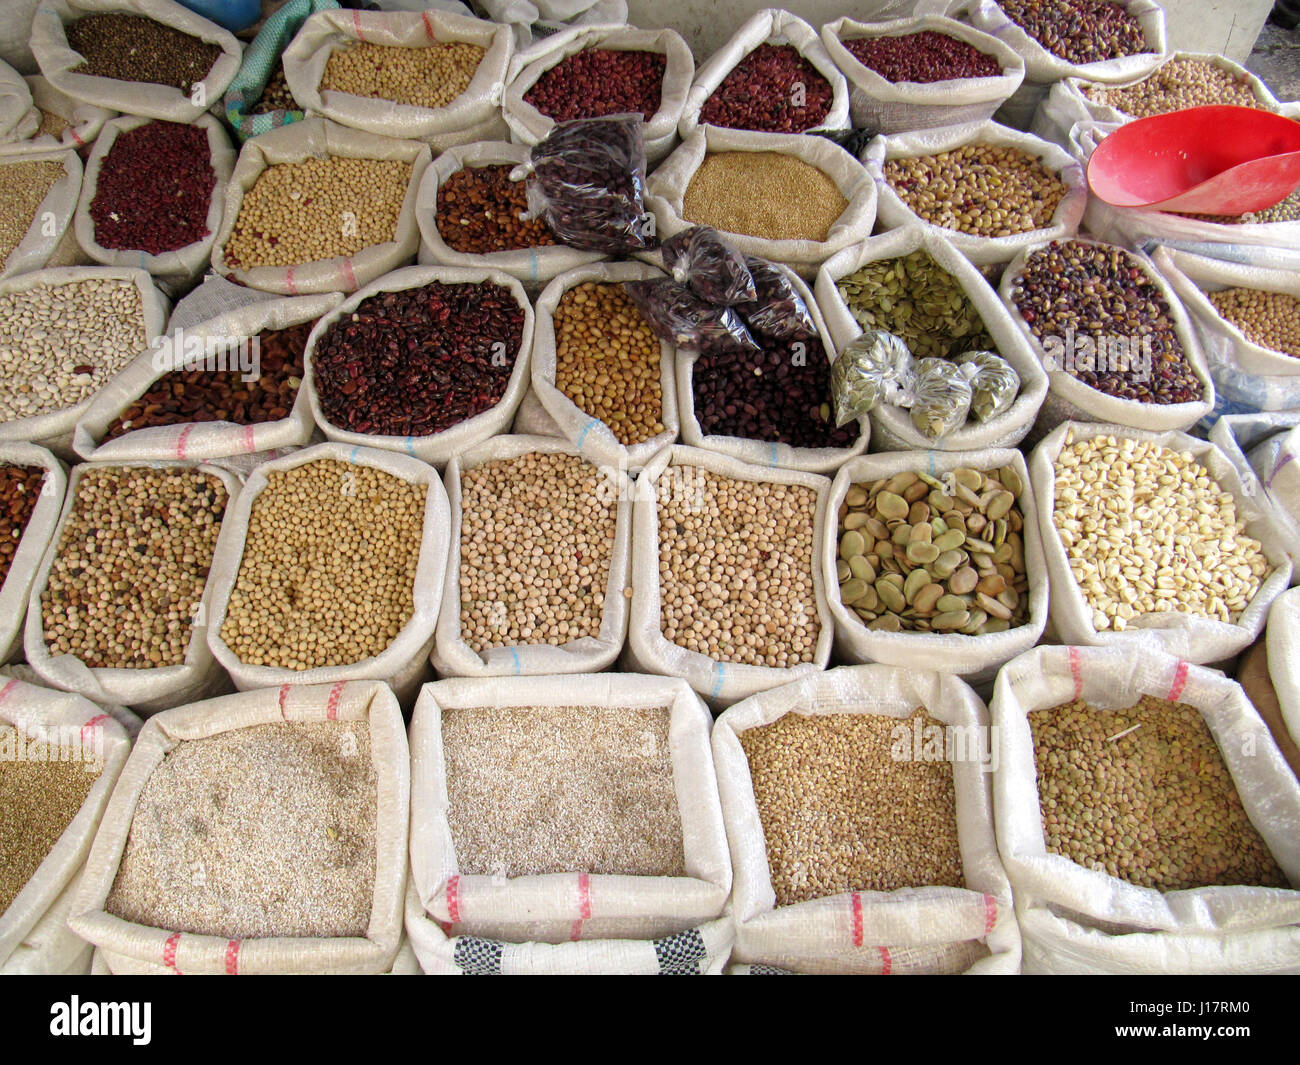 above view of sacks full of dry grains on sale in South American market - Stock Image